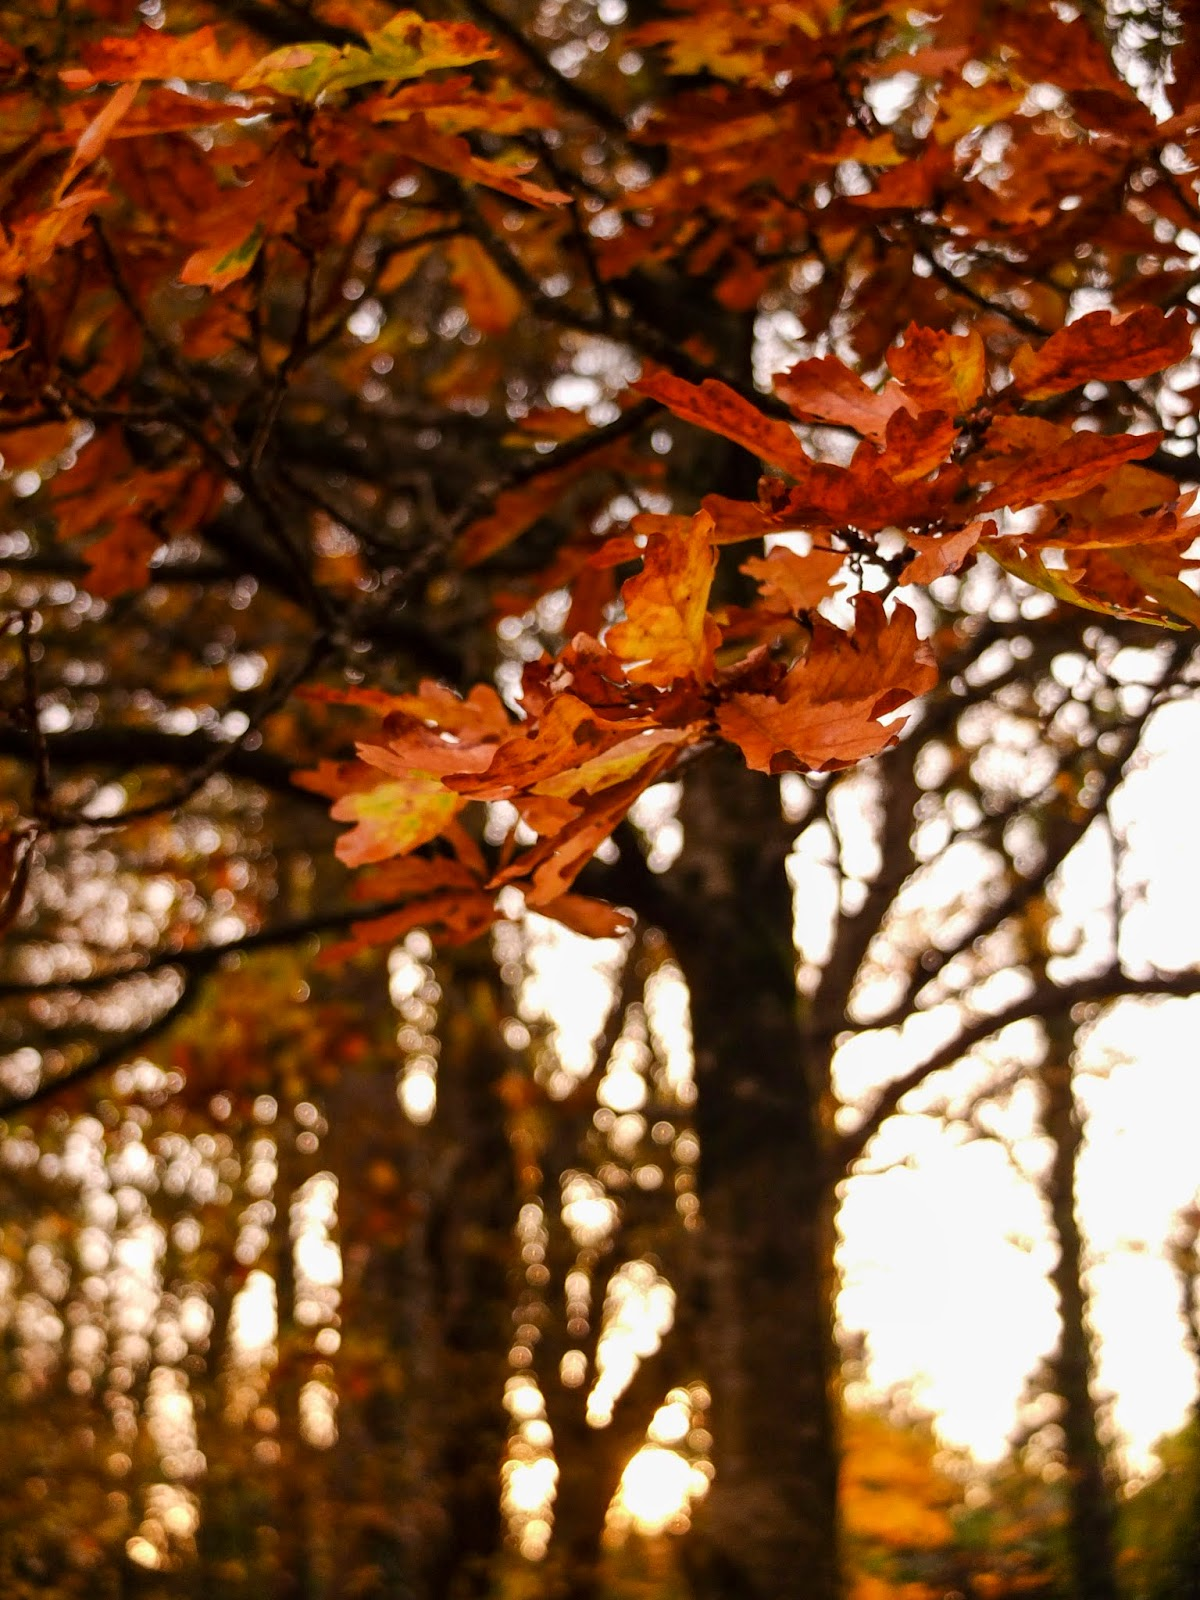 Brown and yellow tones of Oak leaves on branches outside Kanturk Castle in County Cork.